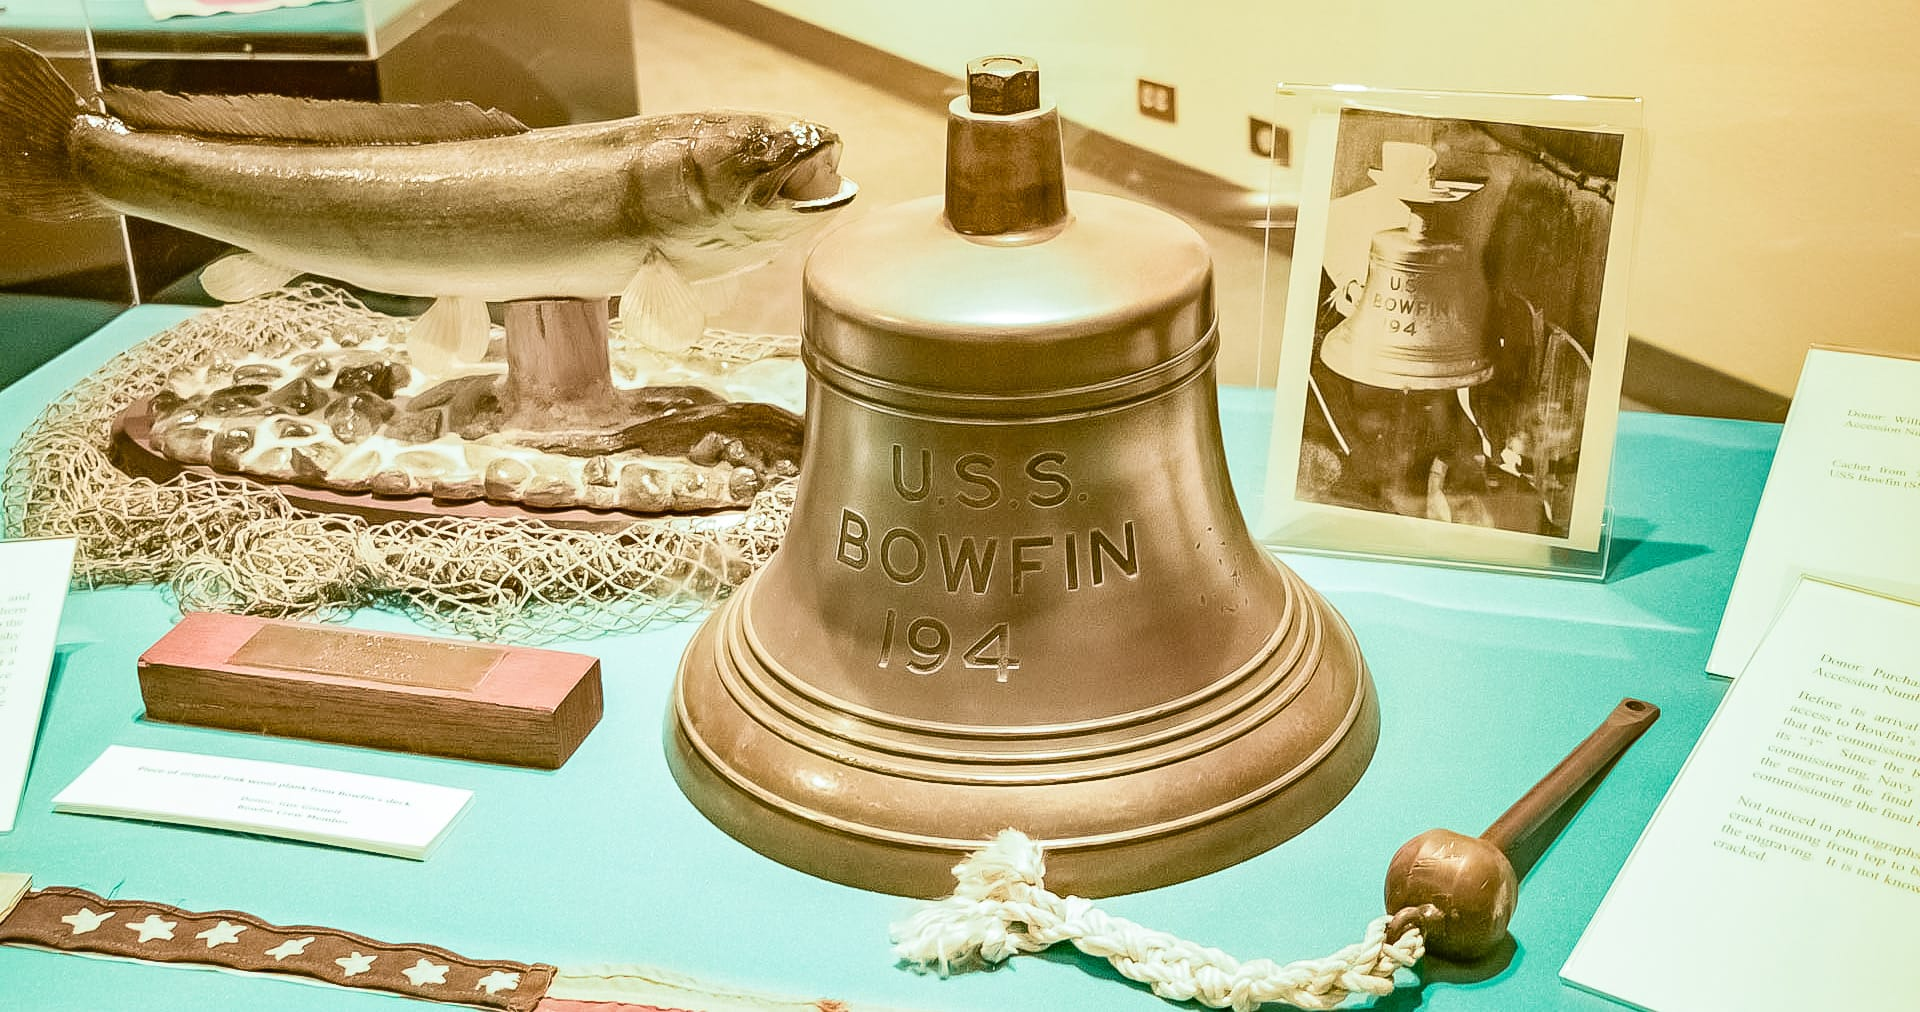 USS-Bowfin-Submarine-Bell-and-Artifacts-in-Submarine-Museum